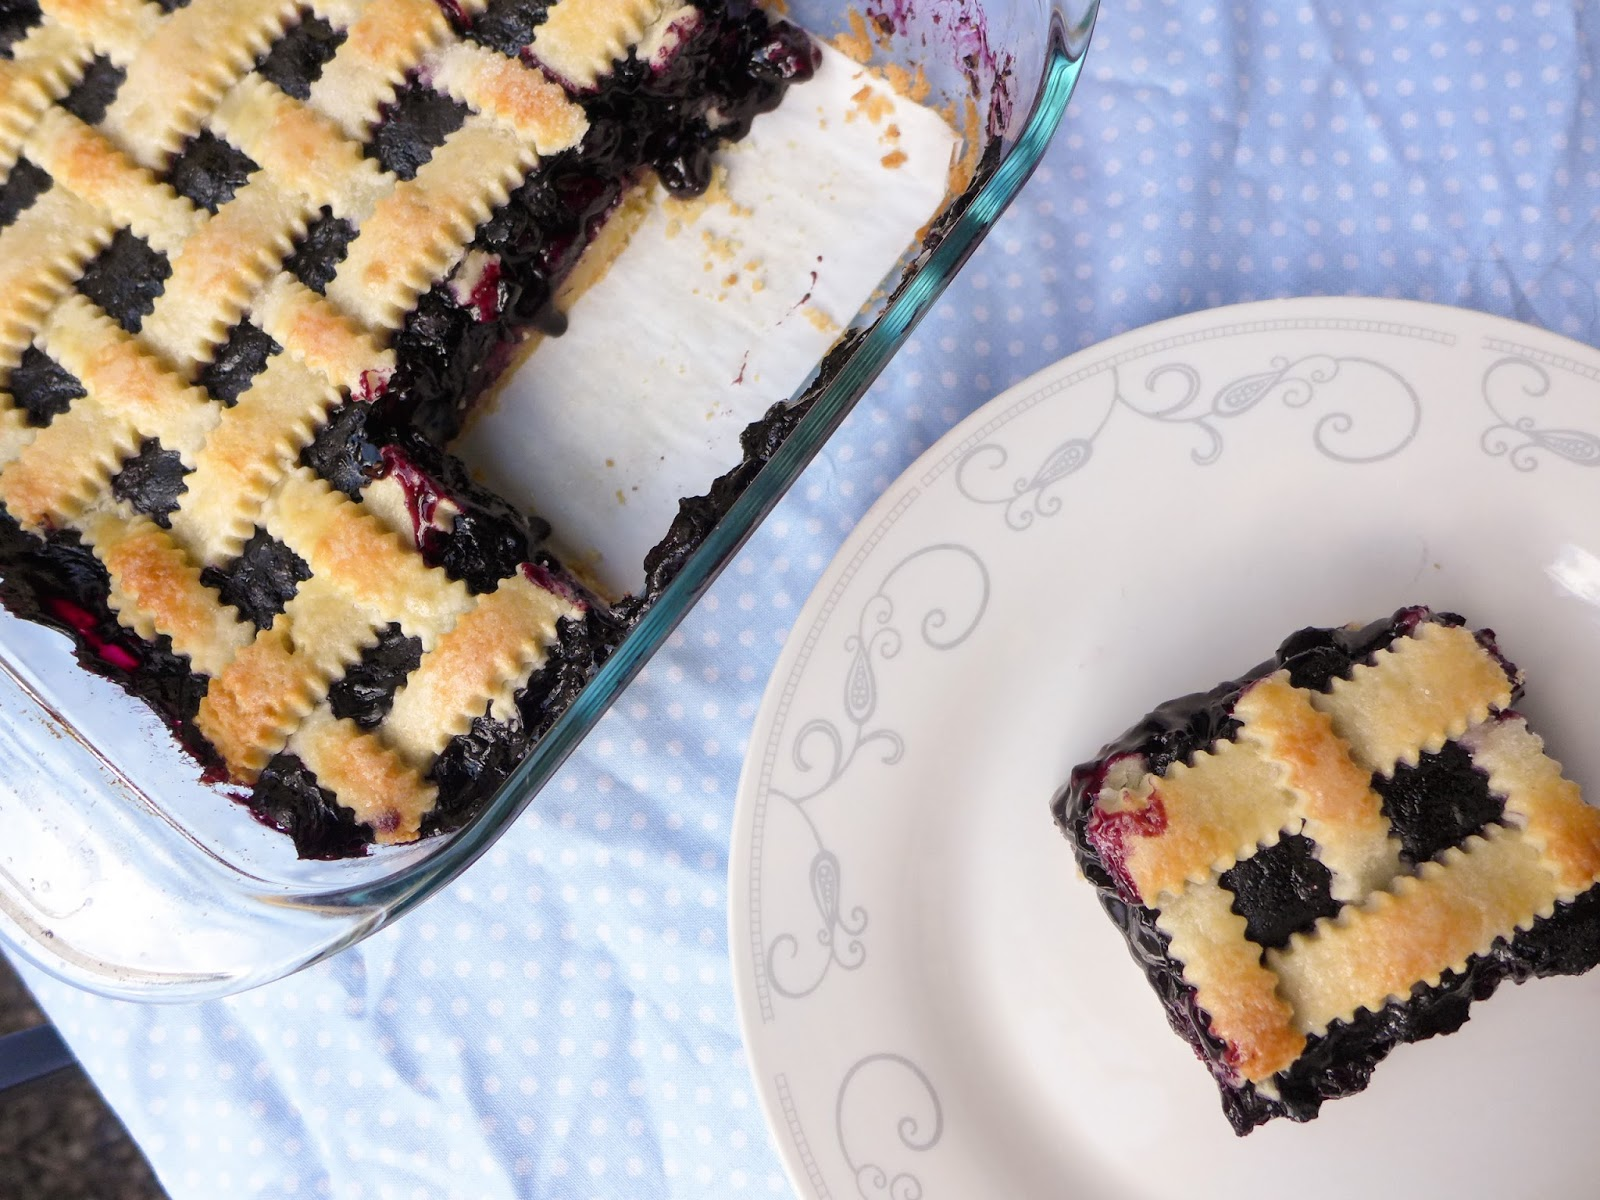 Square blueberry pie